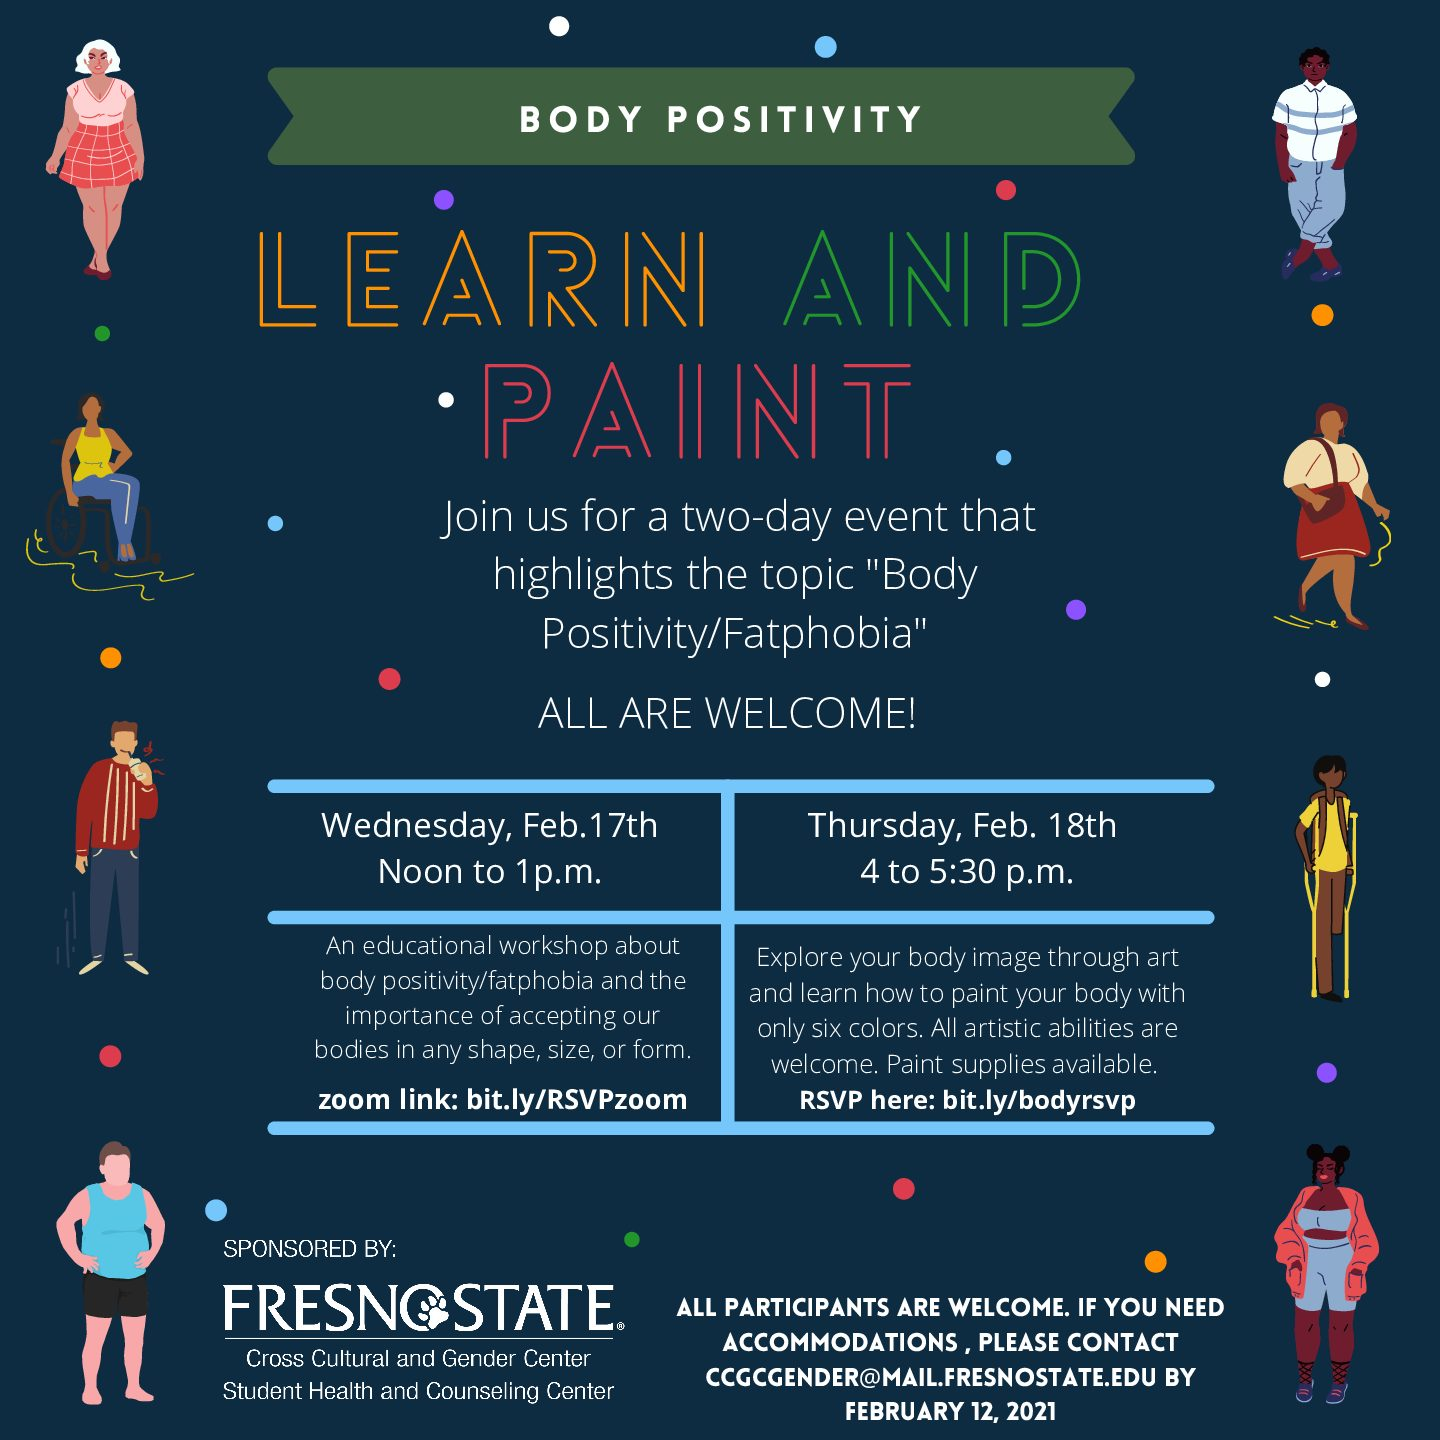 Body positivity: Learn and paint (free event @ Fresno State)